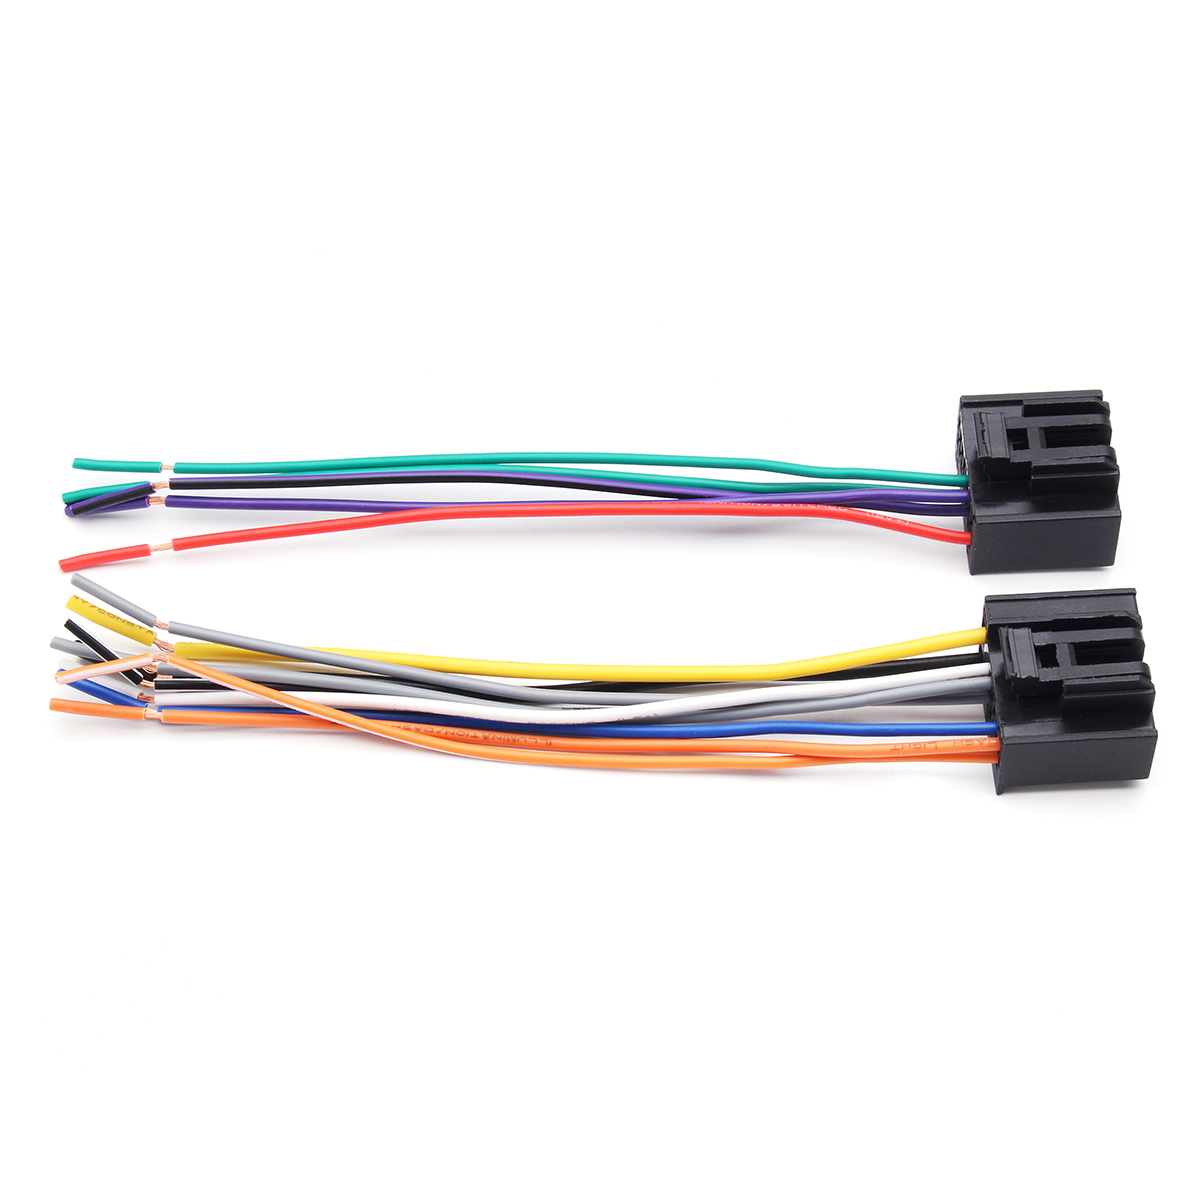 2Pcs Car Radio Stereo Speaker Wiring Harness Plug Cable for Chevrolet  Chevy Dvd Wiring Harness on chevy speaker wiring, chevy clutch assembly, chevy wheel cylinders, chevy fan motor, chevy 1500 wireing harness color codes, chevy battery terminal, chevy relay switch, chevy rear diff, chevy front fender, chevy power socket, chevy radiator cap, chevy alternator harness, chevy speaker harness, chevy crossmember, chevy wiring horn, chevy clutch line, chevy wiring connectors, chevy warning sticker, chevy wiring schematics, chevy abs unit,